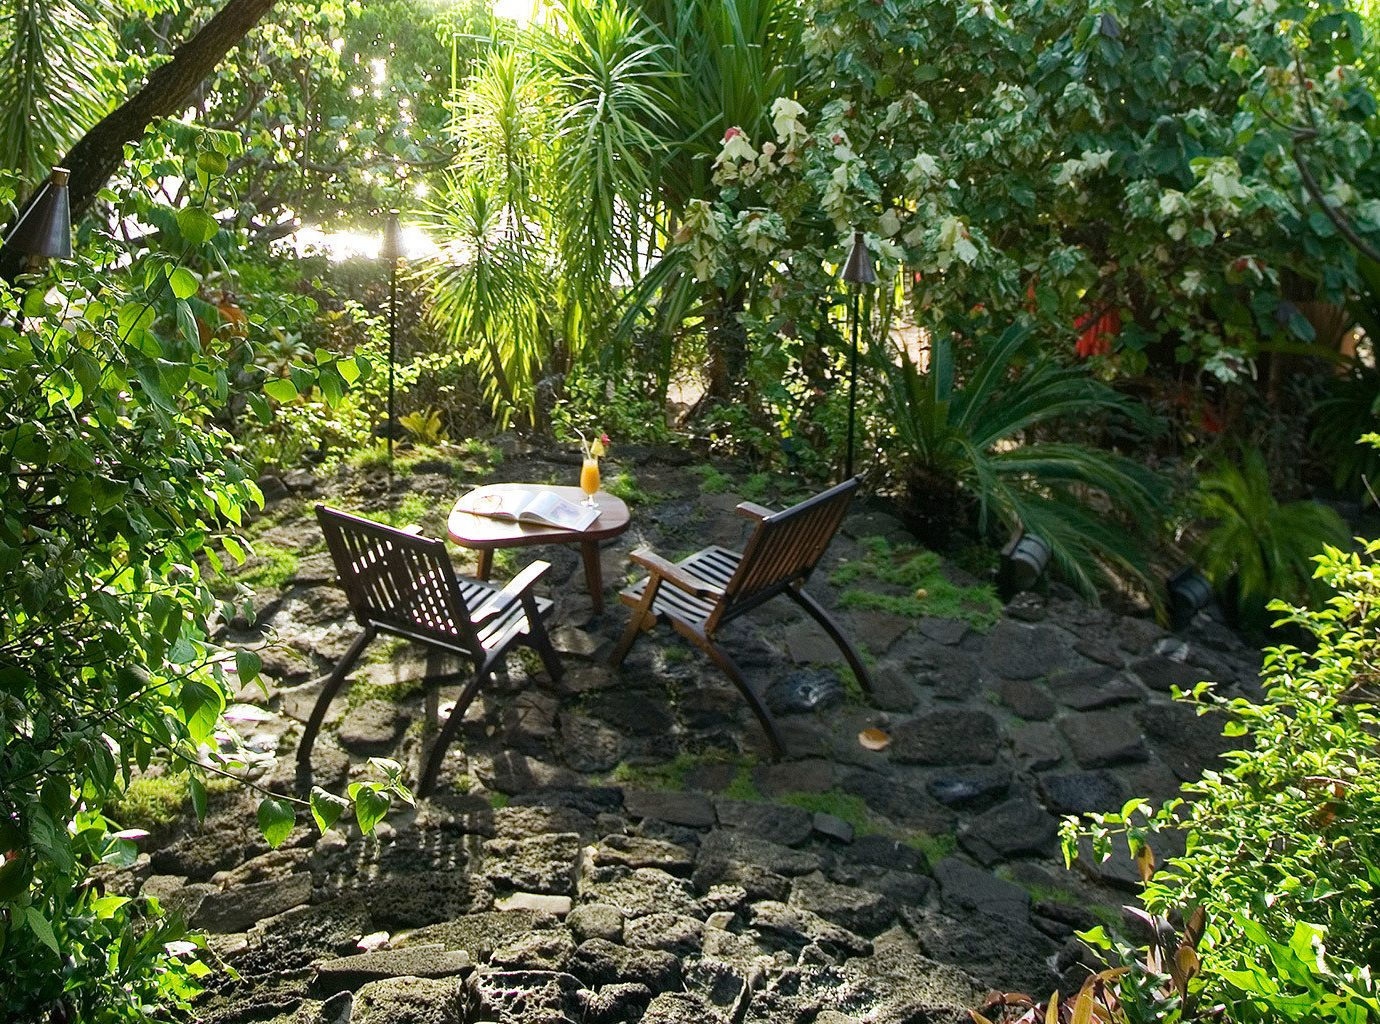 Hotels Lounge Outdoor Activities Outdoors Resort Scenic views tree outdoor bench ground habitat park natural environment wilderness rainforest Forest woodland Garden botany Jungle pond backyard leaf trail yard stream flower plant tropics surrounded porch stone area shade bushes wooded